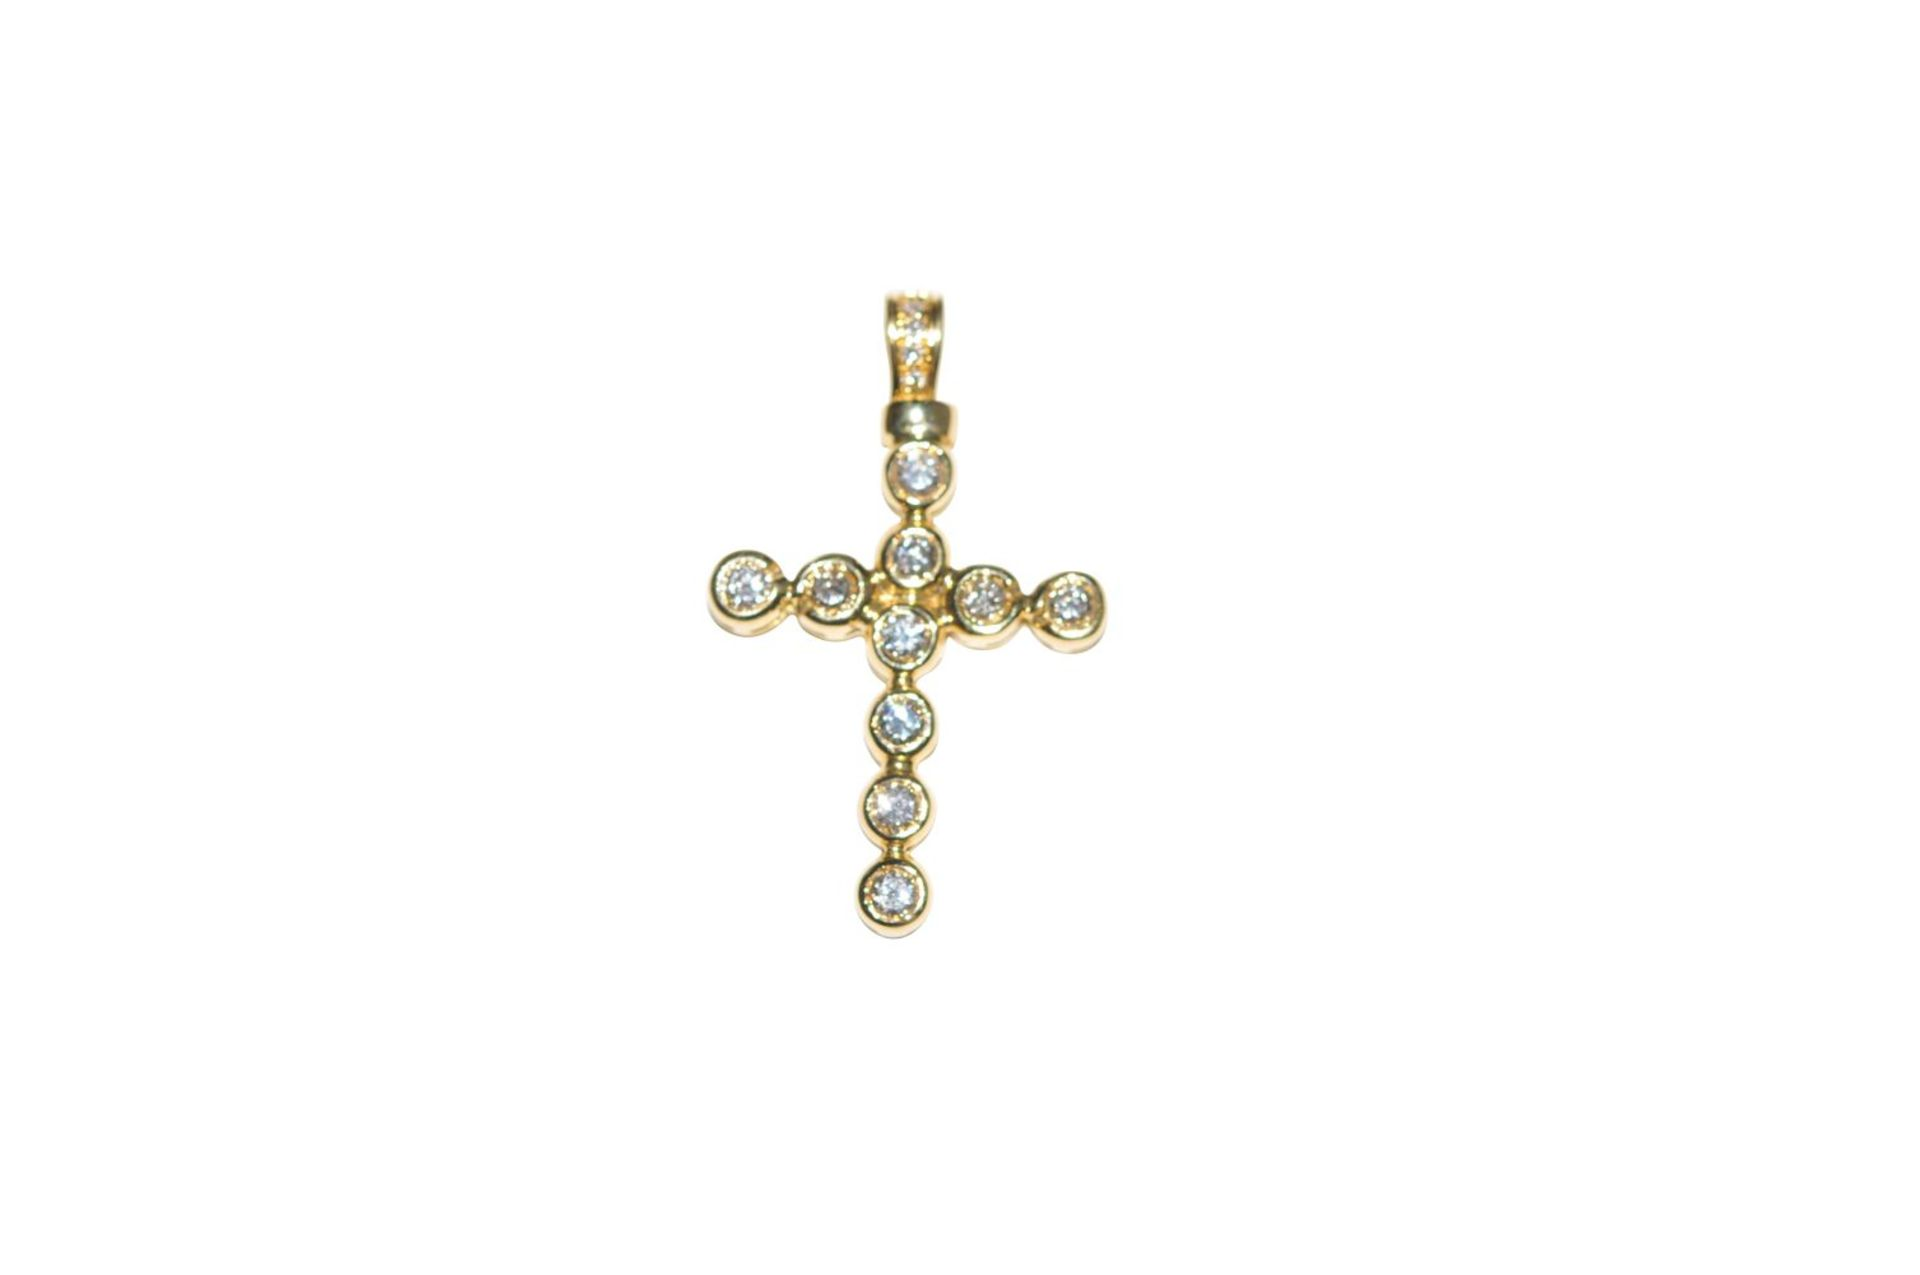 Los 98 - Diamond cross pendantGolden cross pendant, 18kt, with diamonds, approx. 1.07ct, total weight